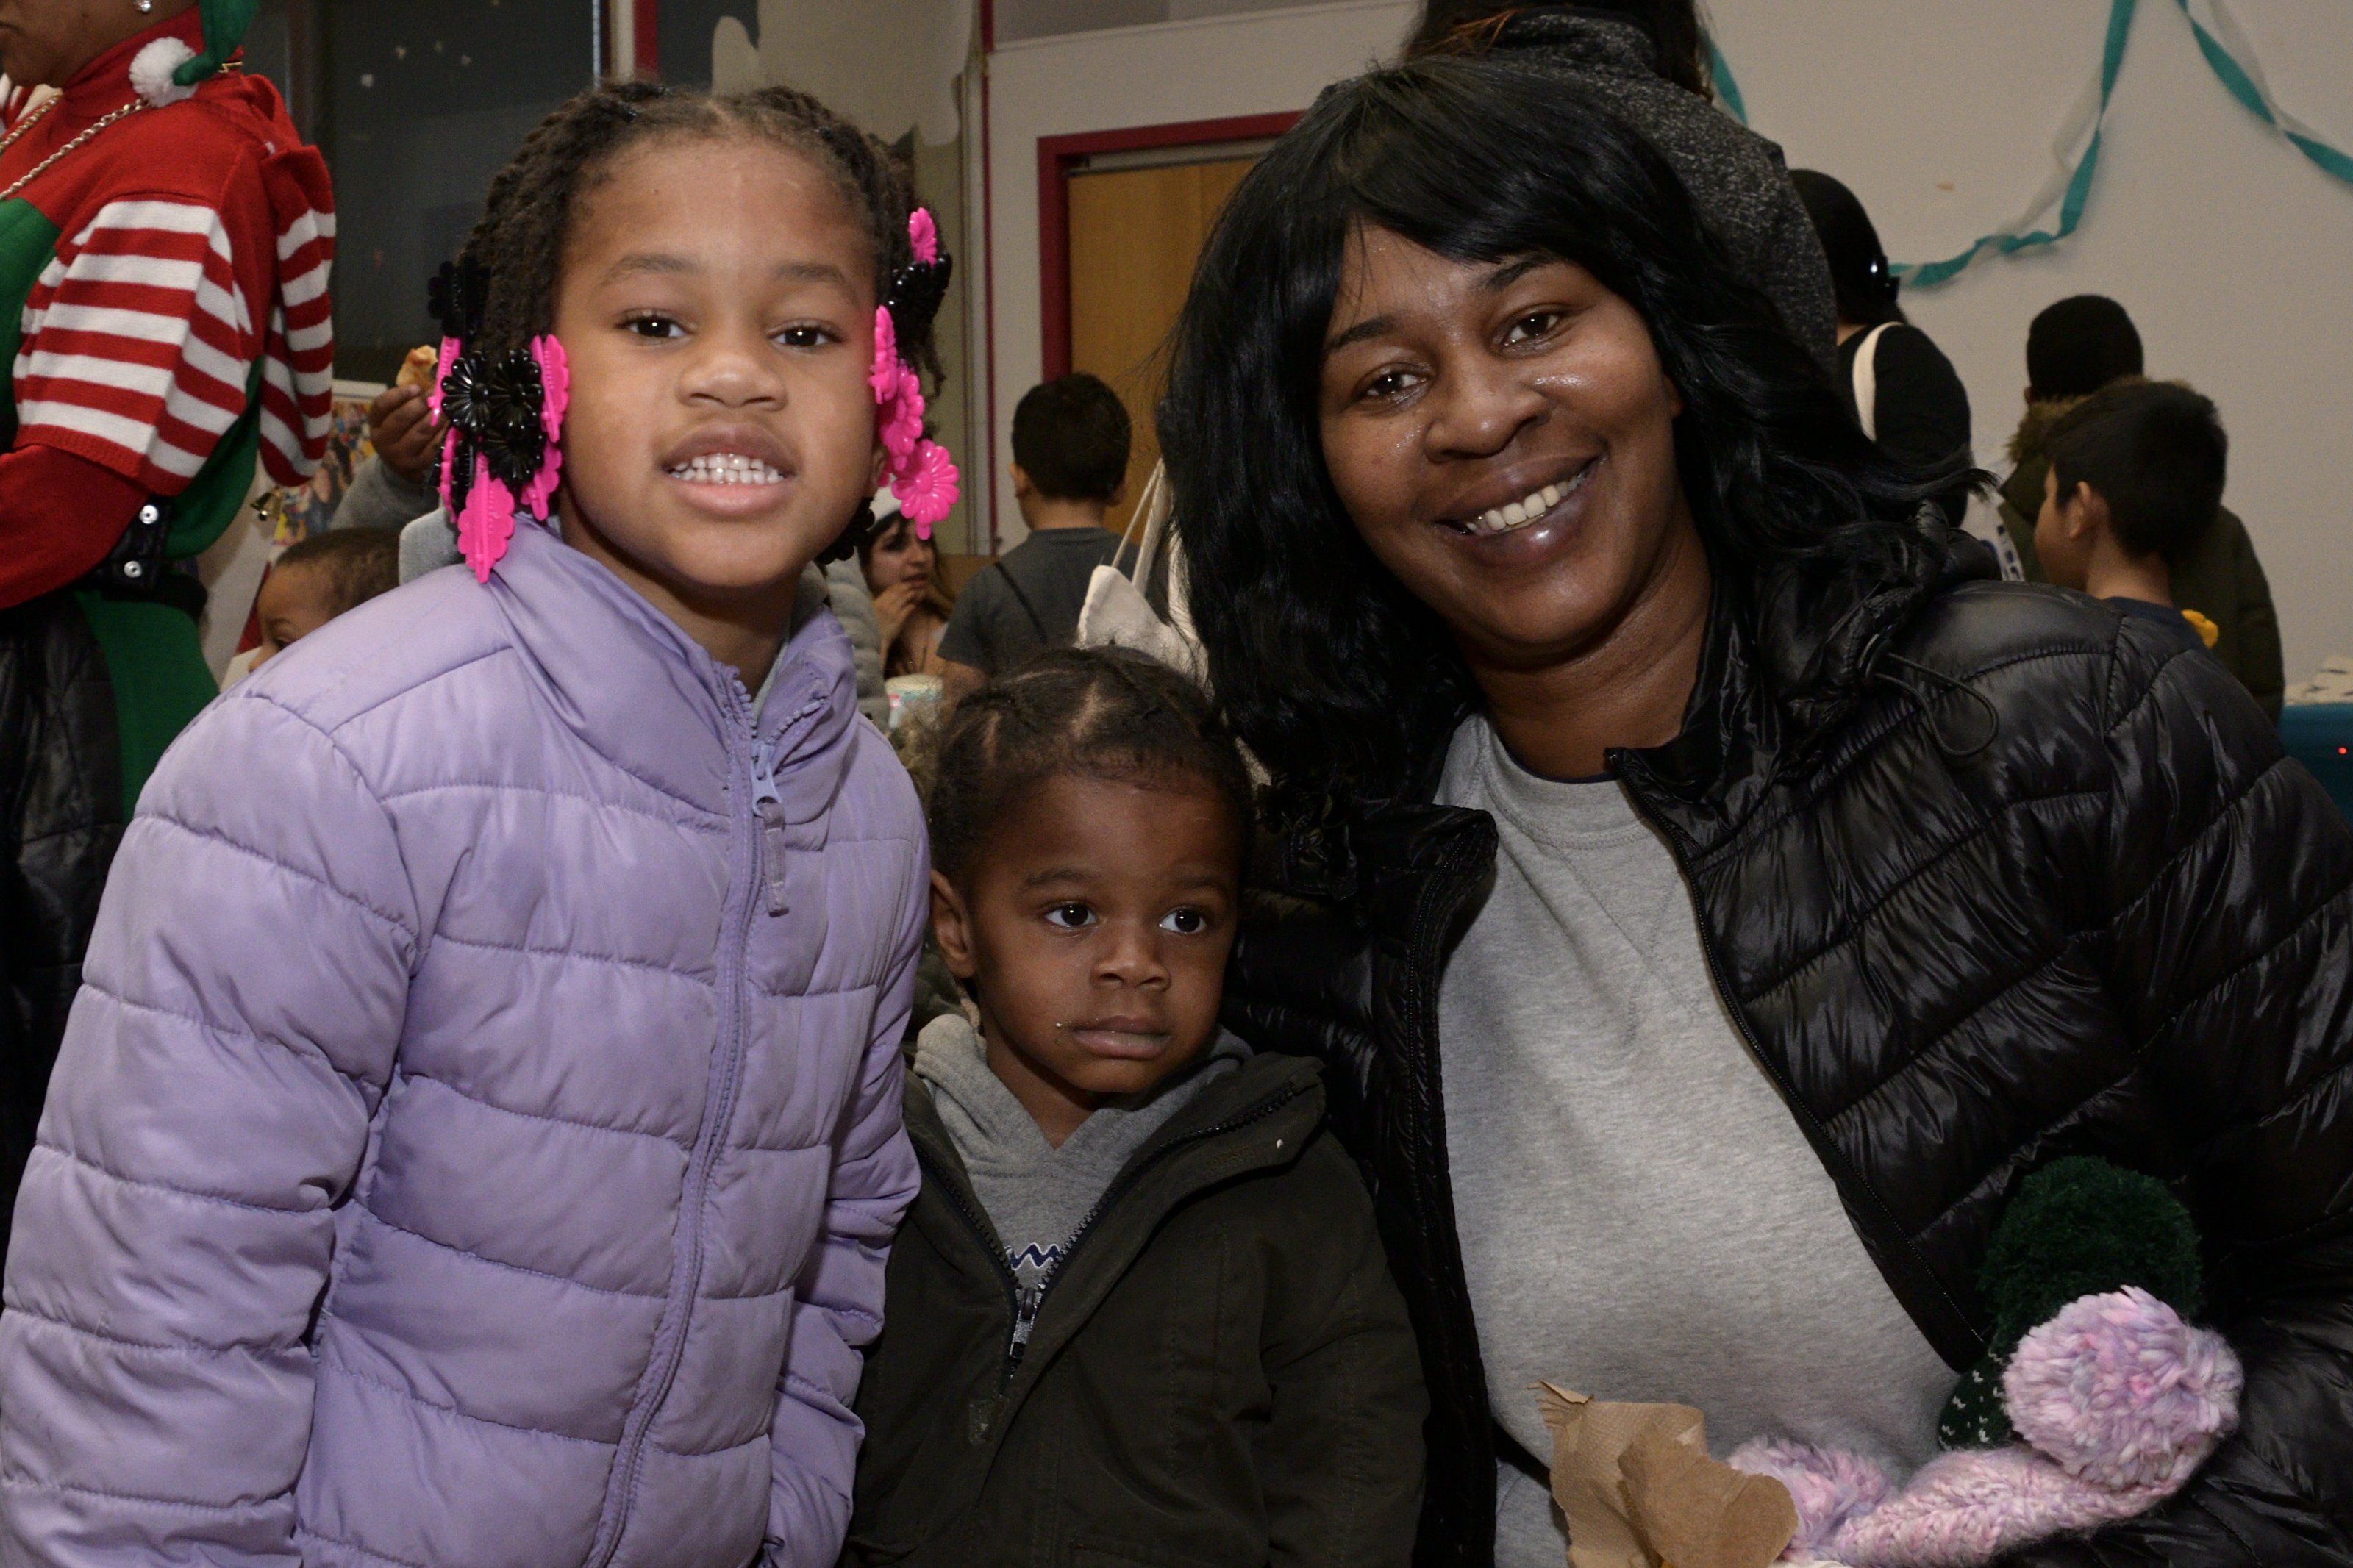 Iris Caple with her family at the Annual Winter Festival in Olney. Bas Slabbers/WHYY.